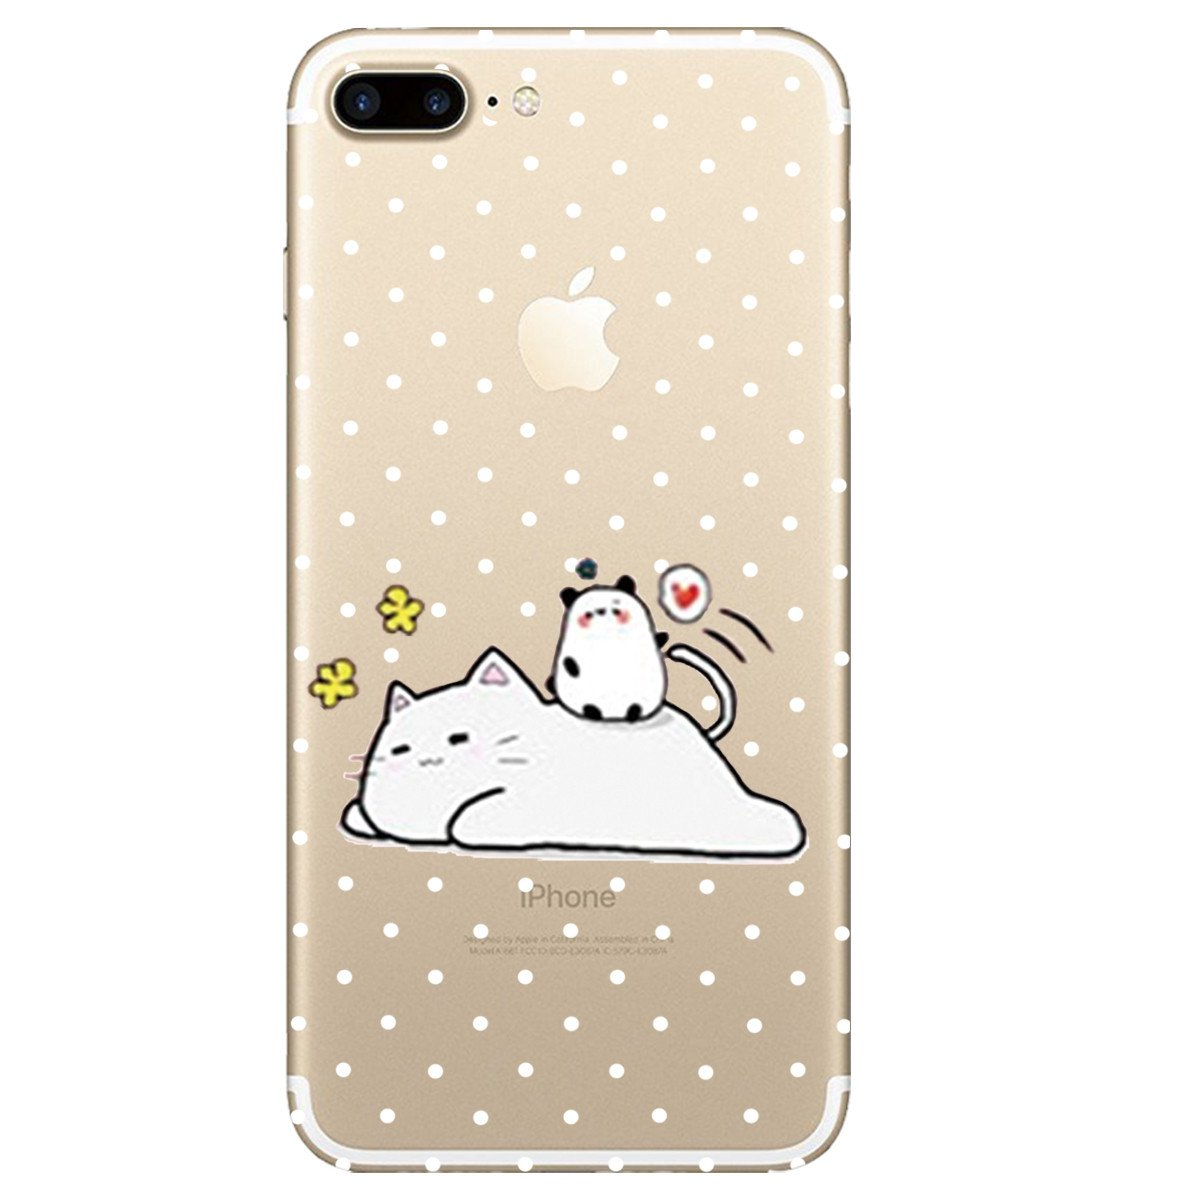 Flexible Transparent Design Slim TPU Back Bumper Cat for Girls Scratch Resistant No-Slip Protective Case for iPhone 7 Plus//8 Plus iPhone 7 Plus Case Cover AIsoar iPhone 8 Plus Case Cat